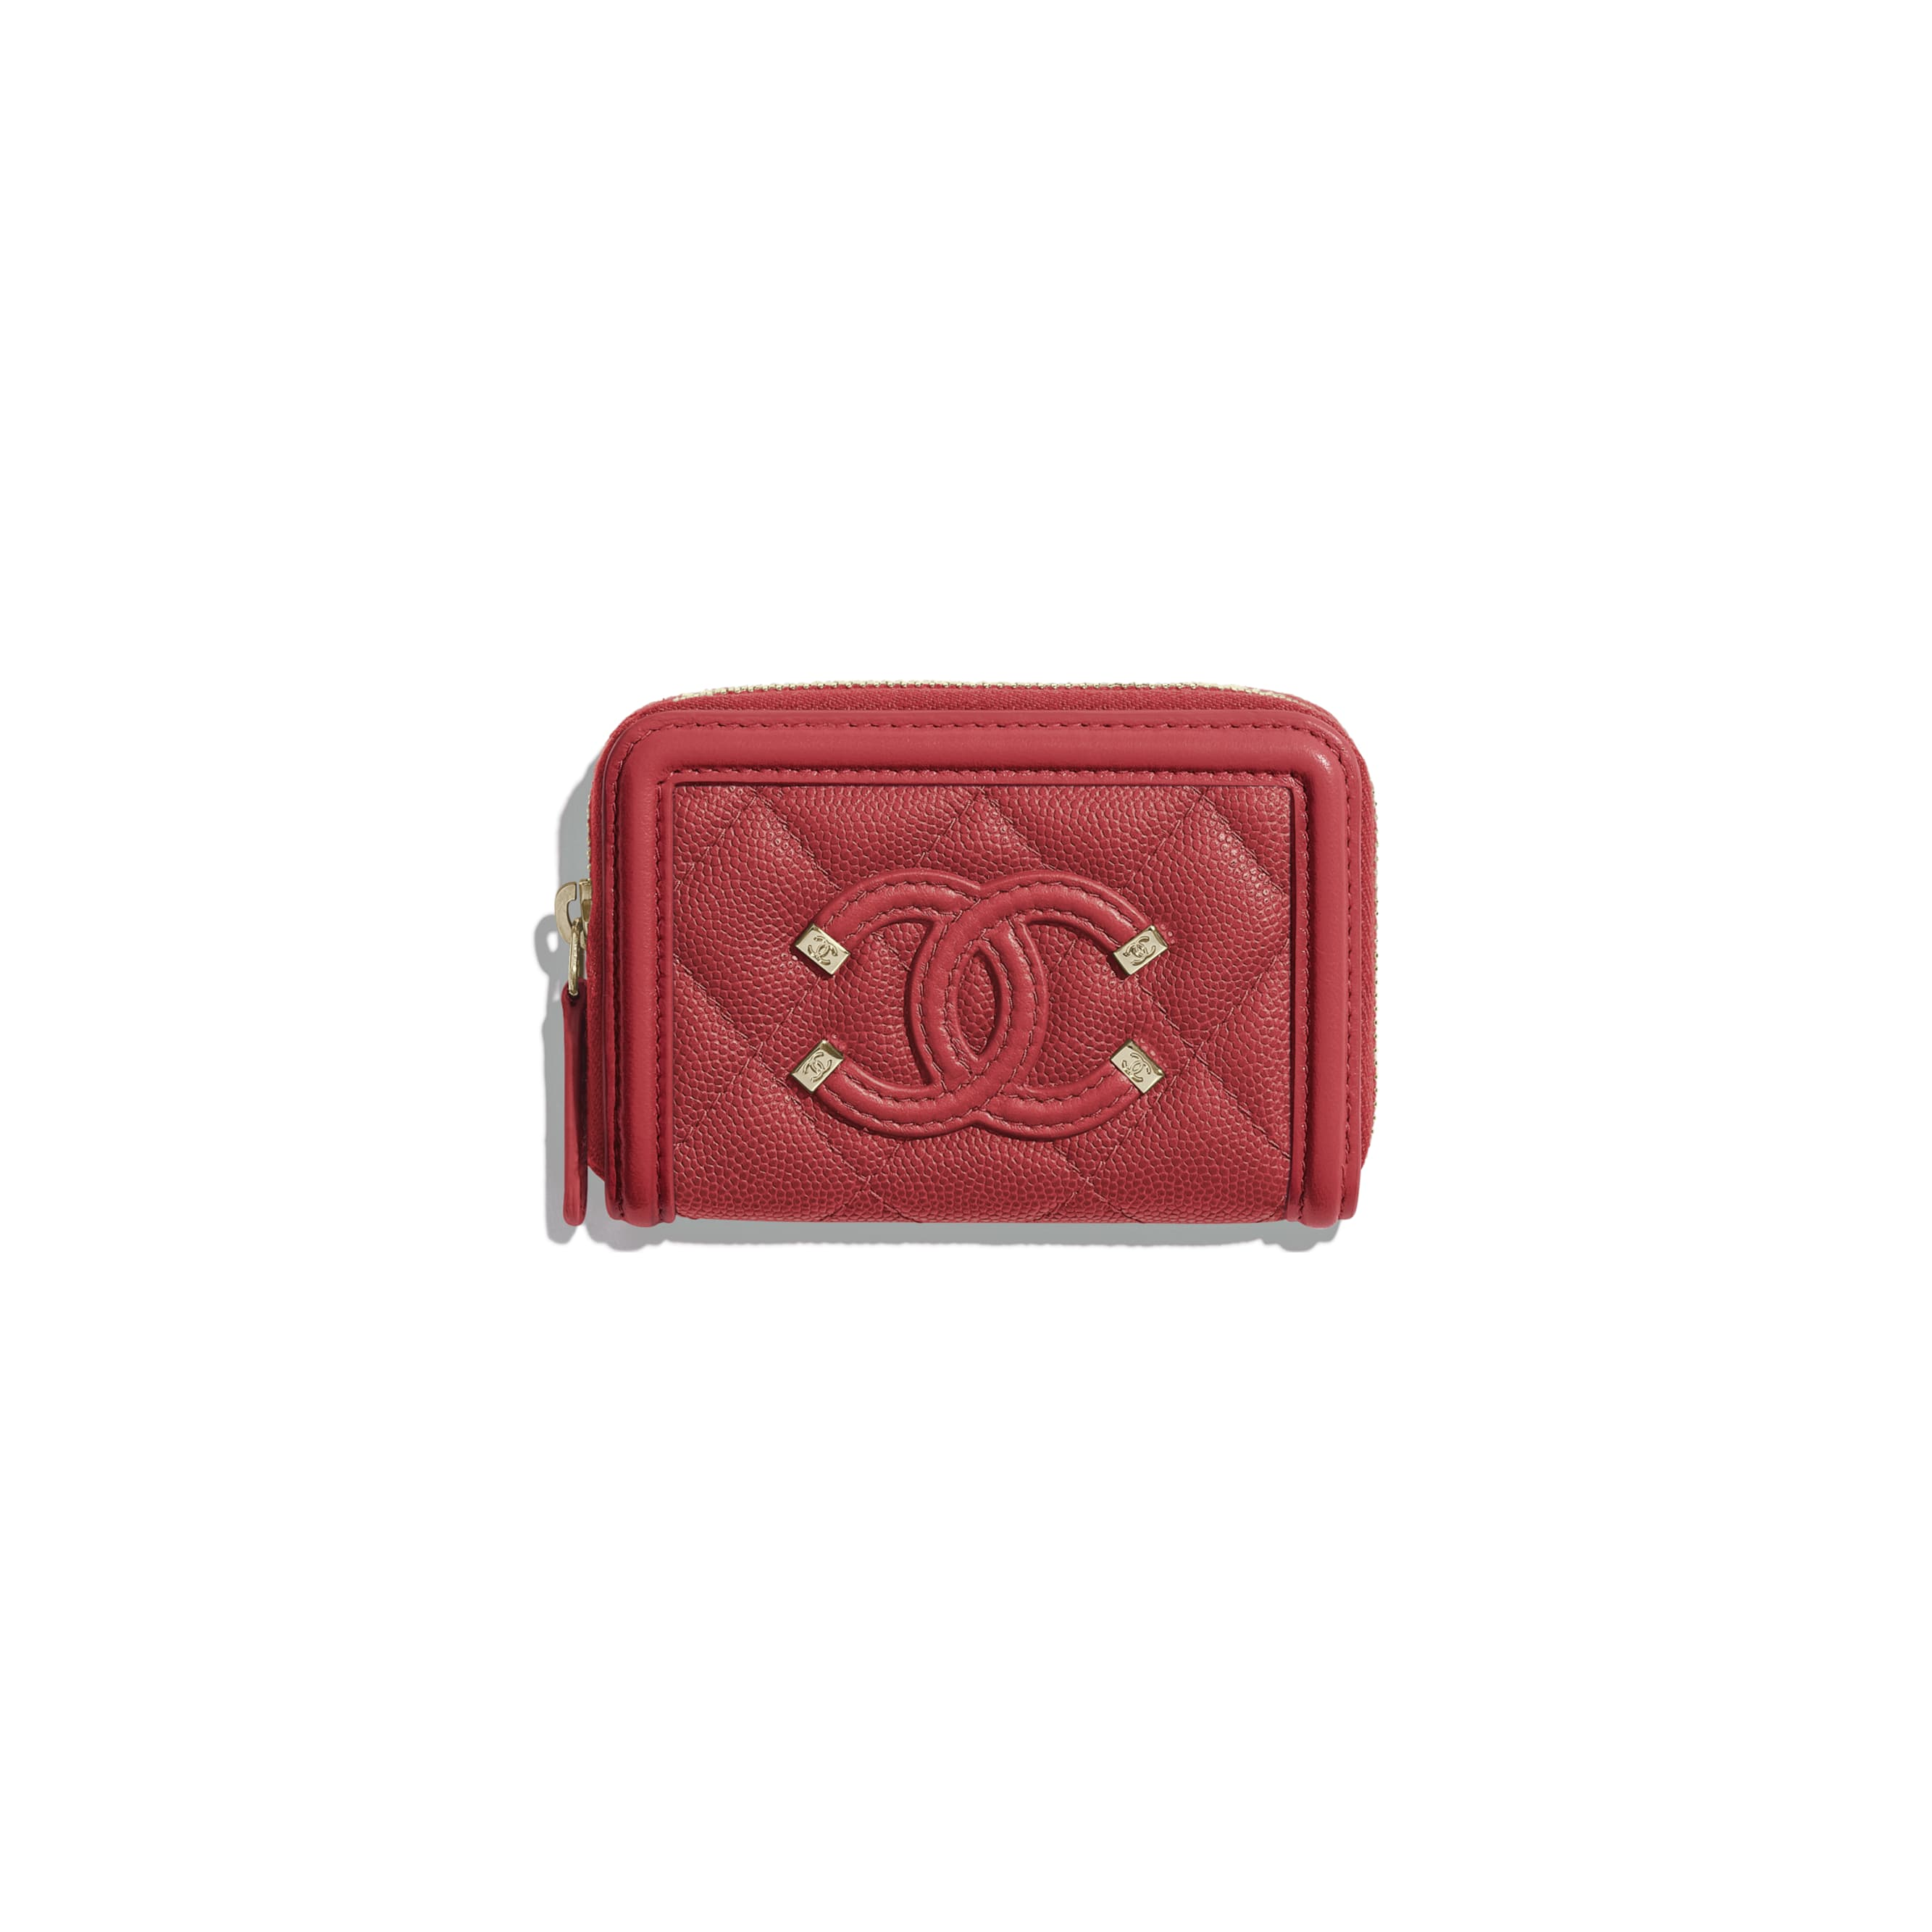 Zipped Coin Purse - Red - Grained Calfskin & Gold-Tone Metal - CHANEL - Default view - see standard sized version